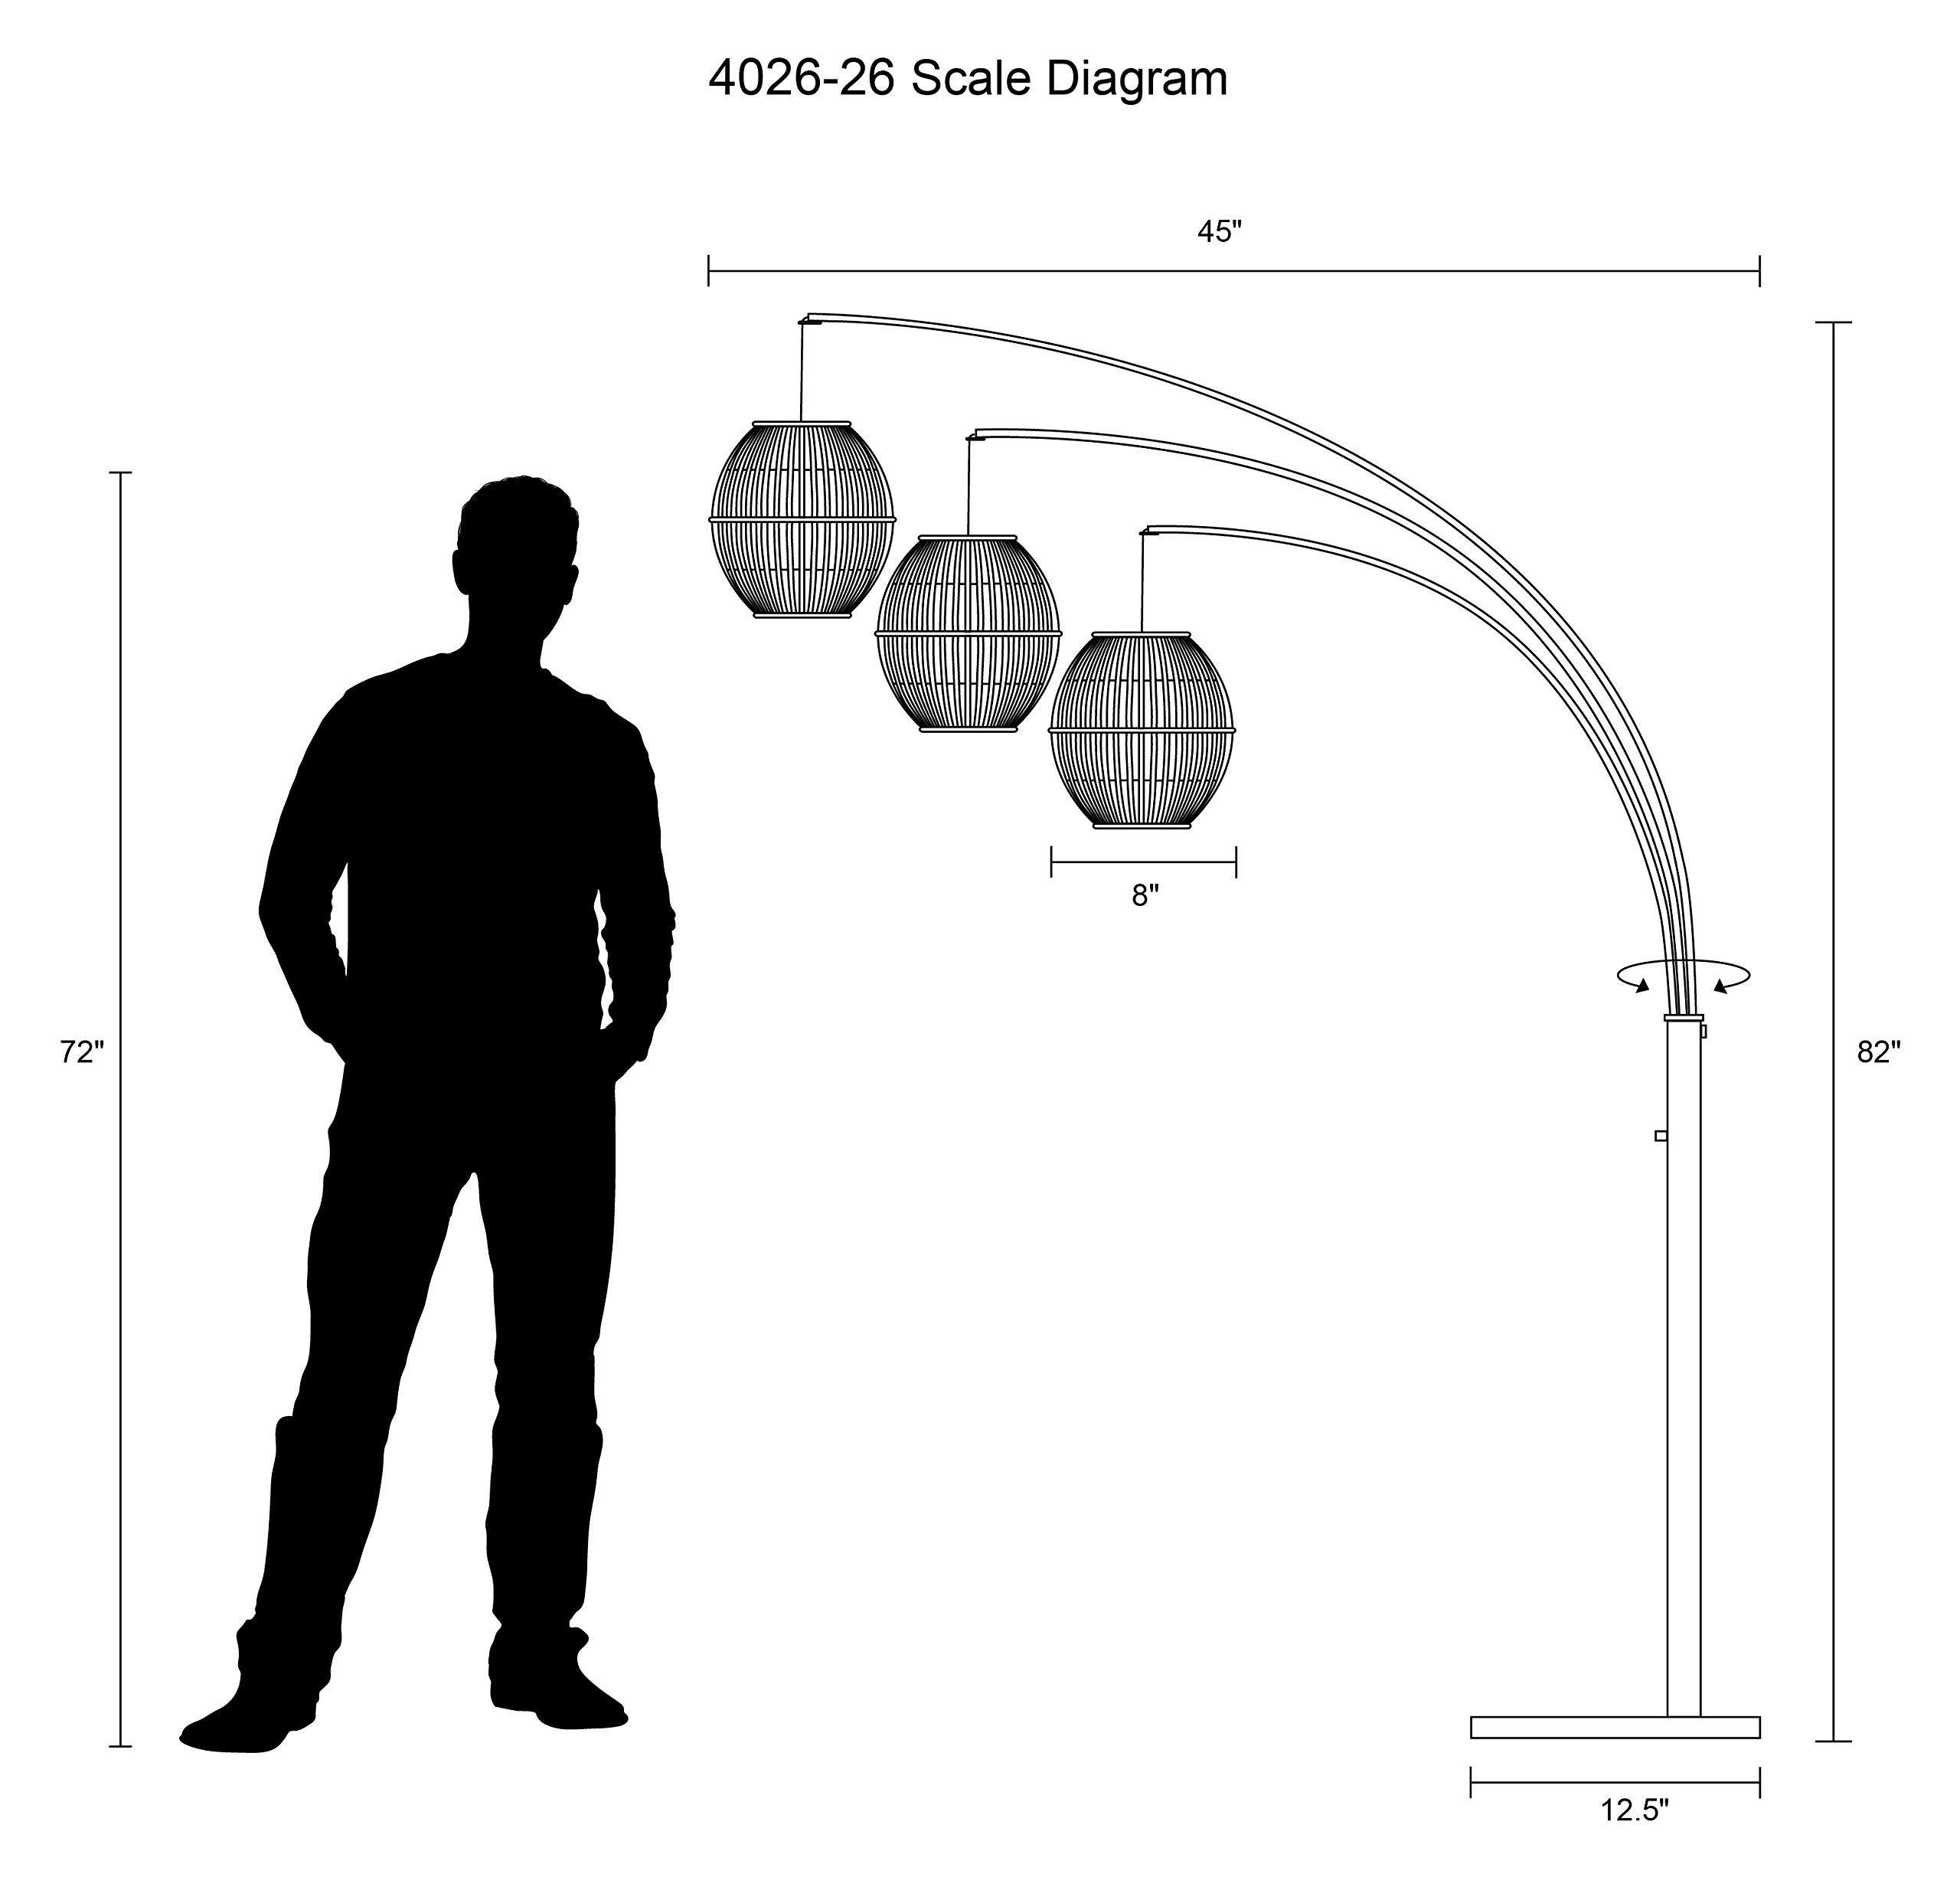 Adesso 4026-26 Maui 82'' Arc 3-Light Floor Lamp – Lighting Fixture with Antique Bronze Finish, Smart Outlet Compatible Lamp. Tools and Home Improvement by Adesso